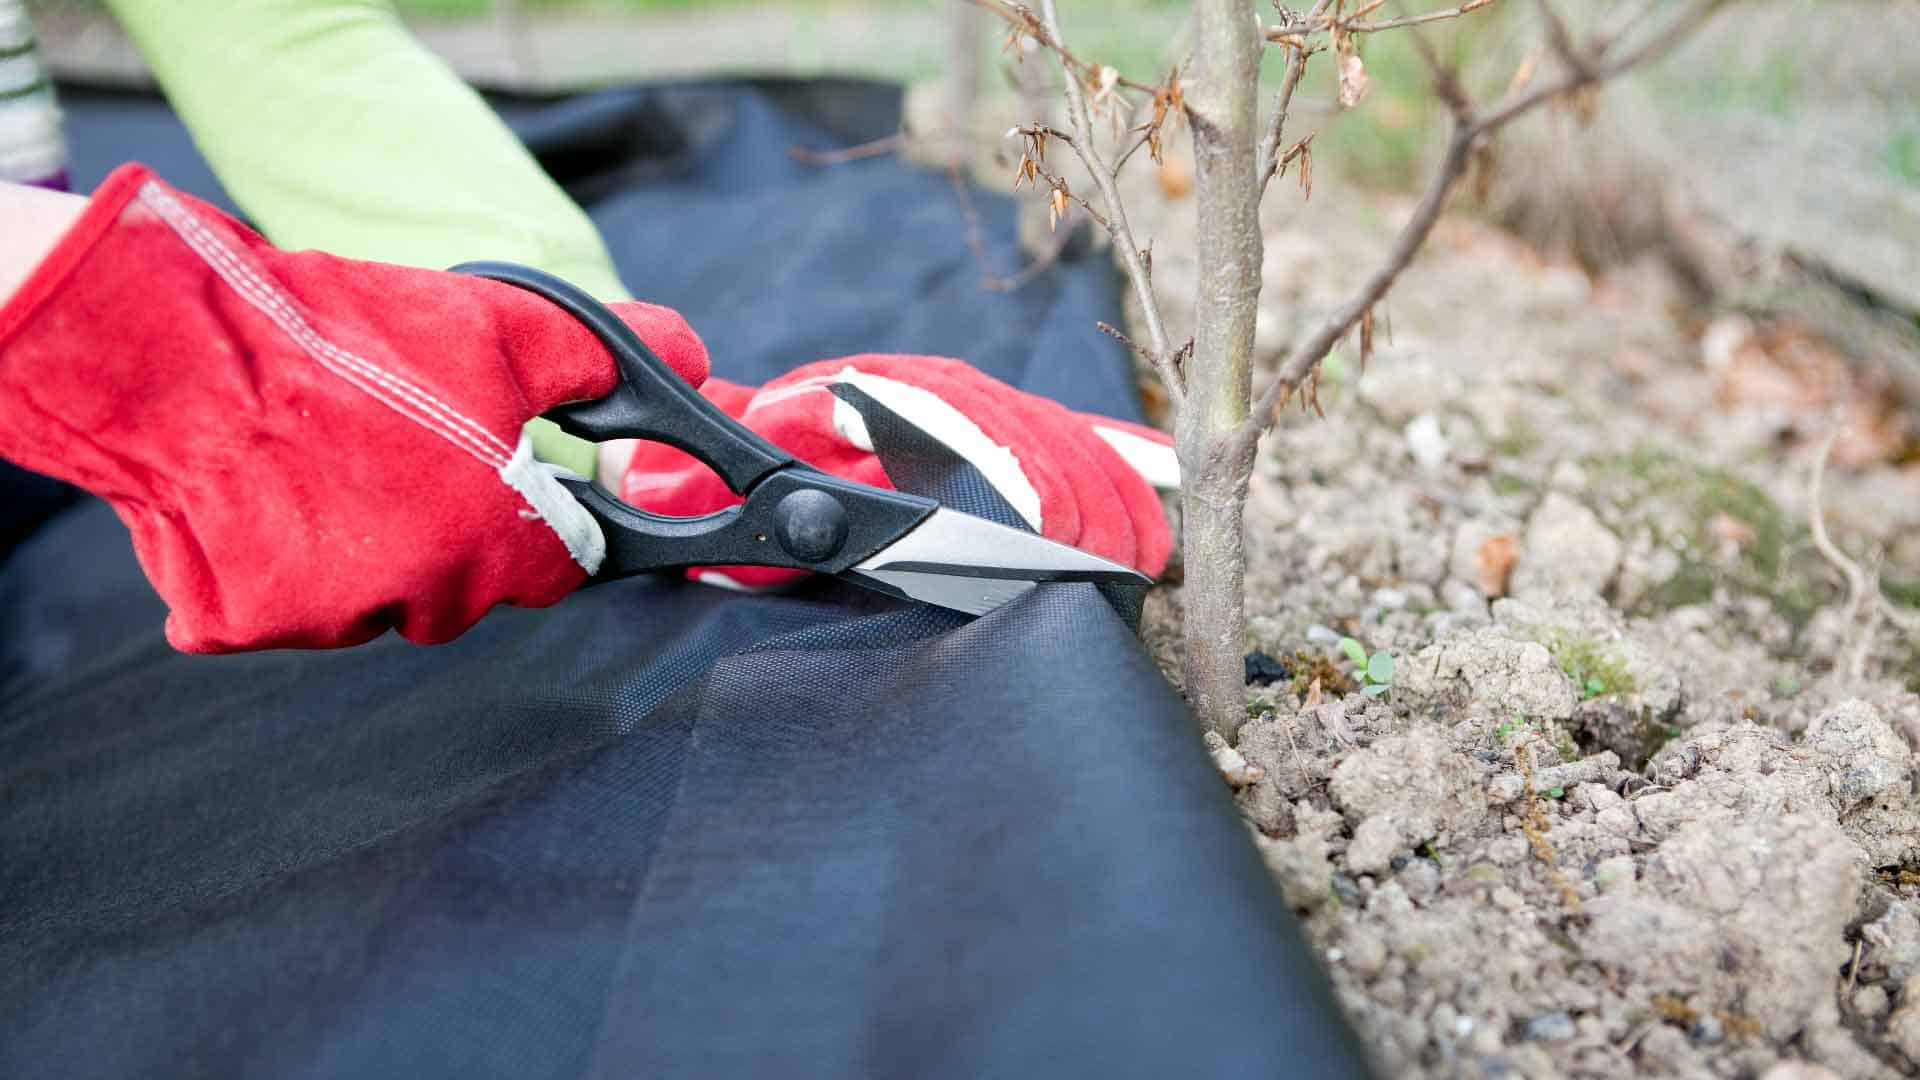 Cutting landscape fabric around tree for weed control